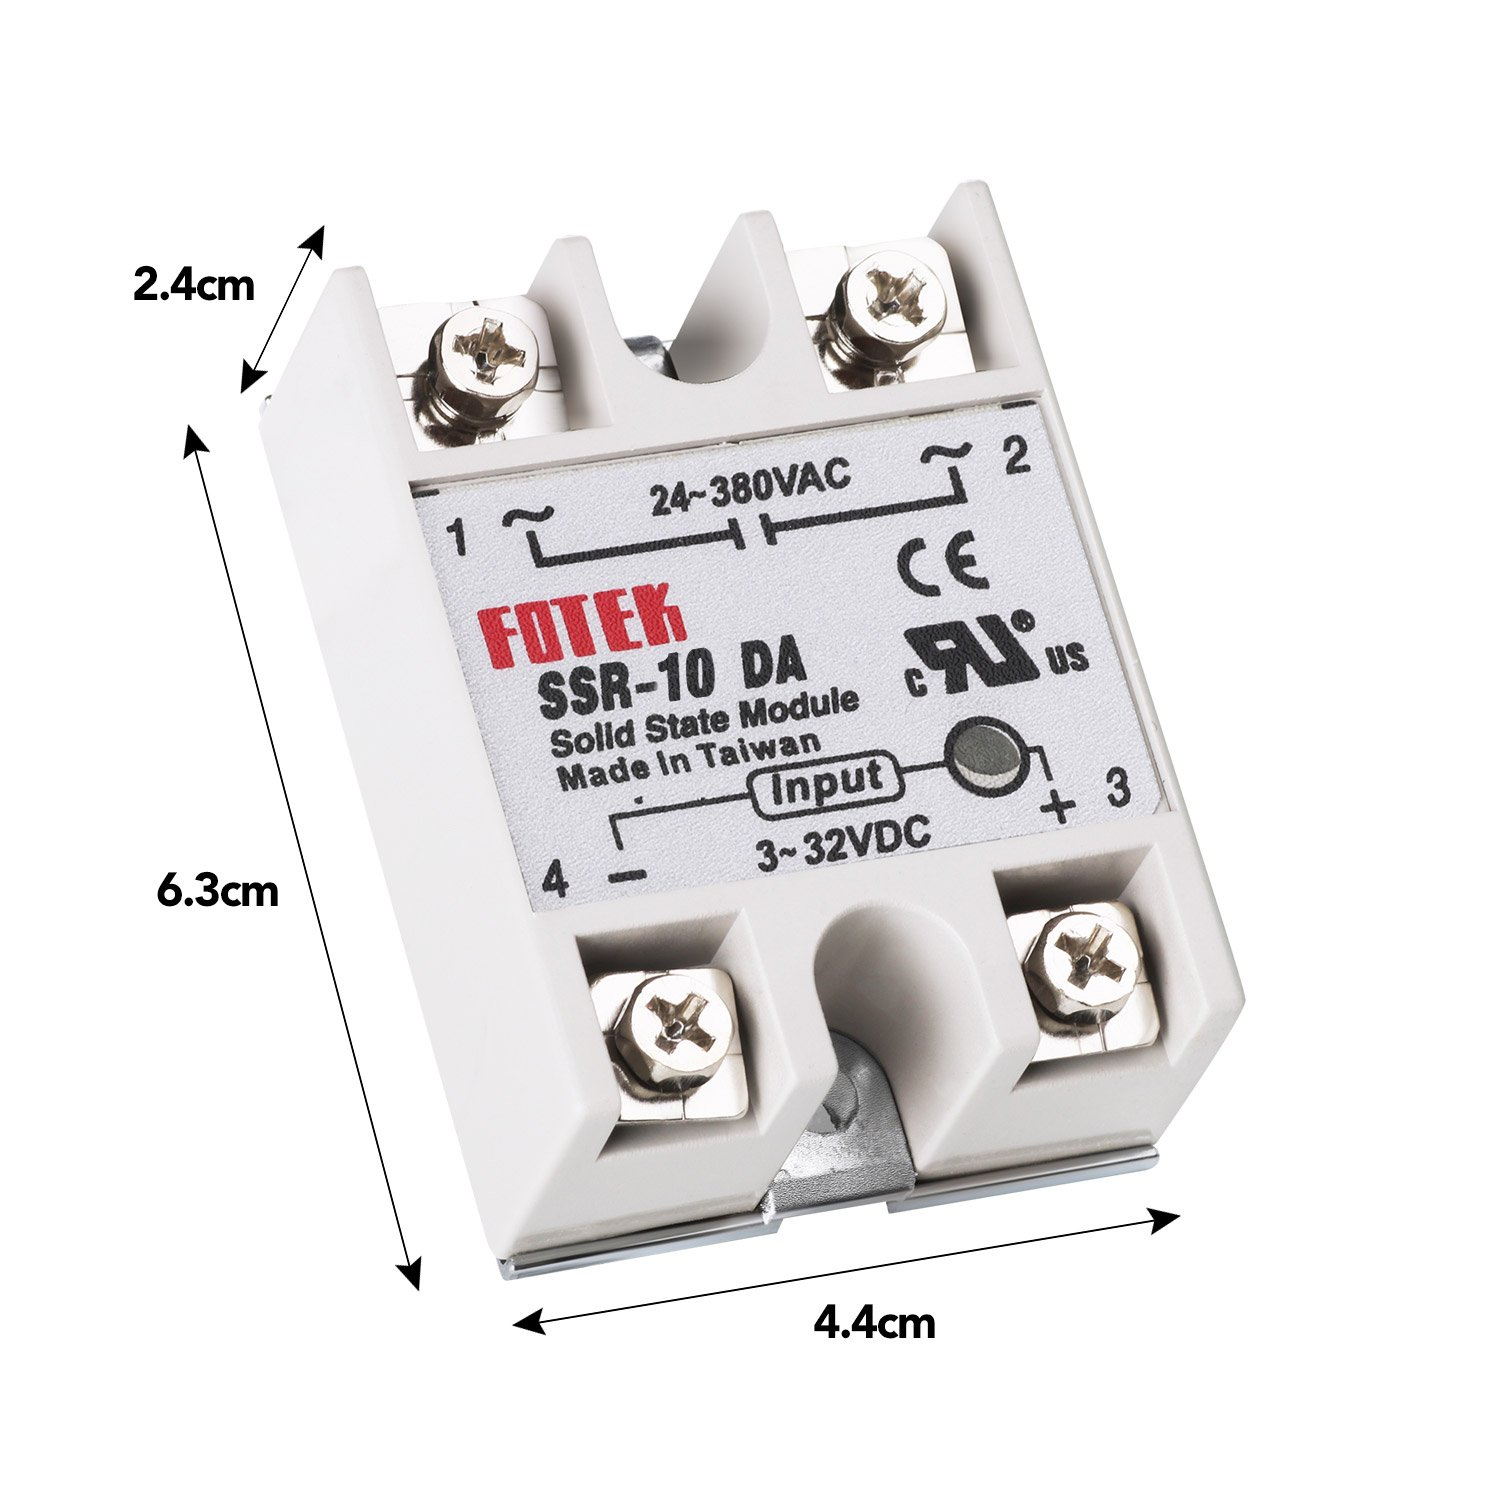 Mysweety 3pcs Ssr 10da Solid State Relay Single Phase Semi Conductor Theory Input 3 32v Dc Output 24 380v Ac Industrial Scientific